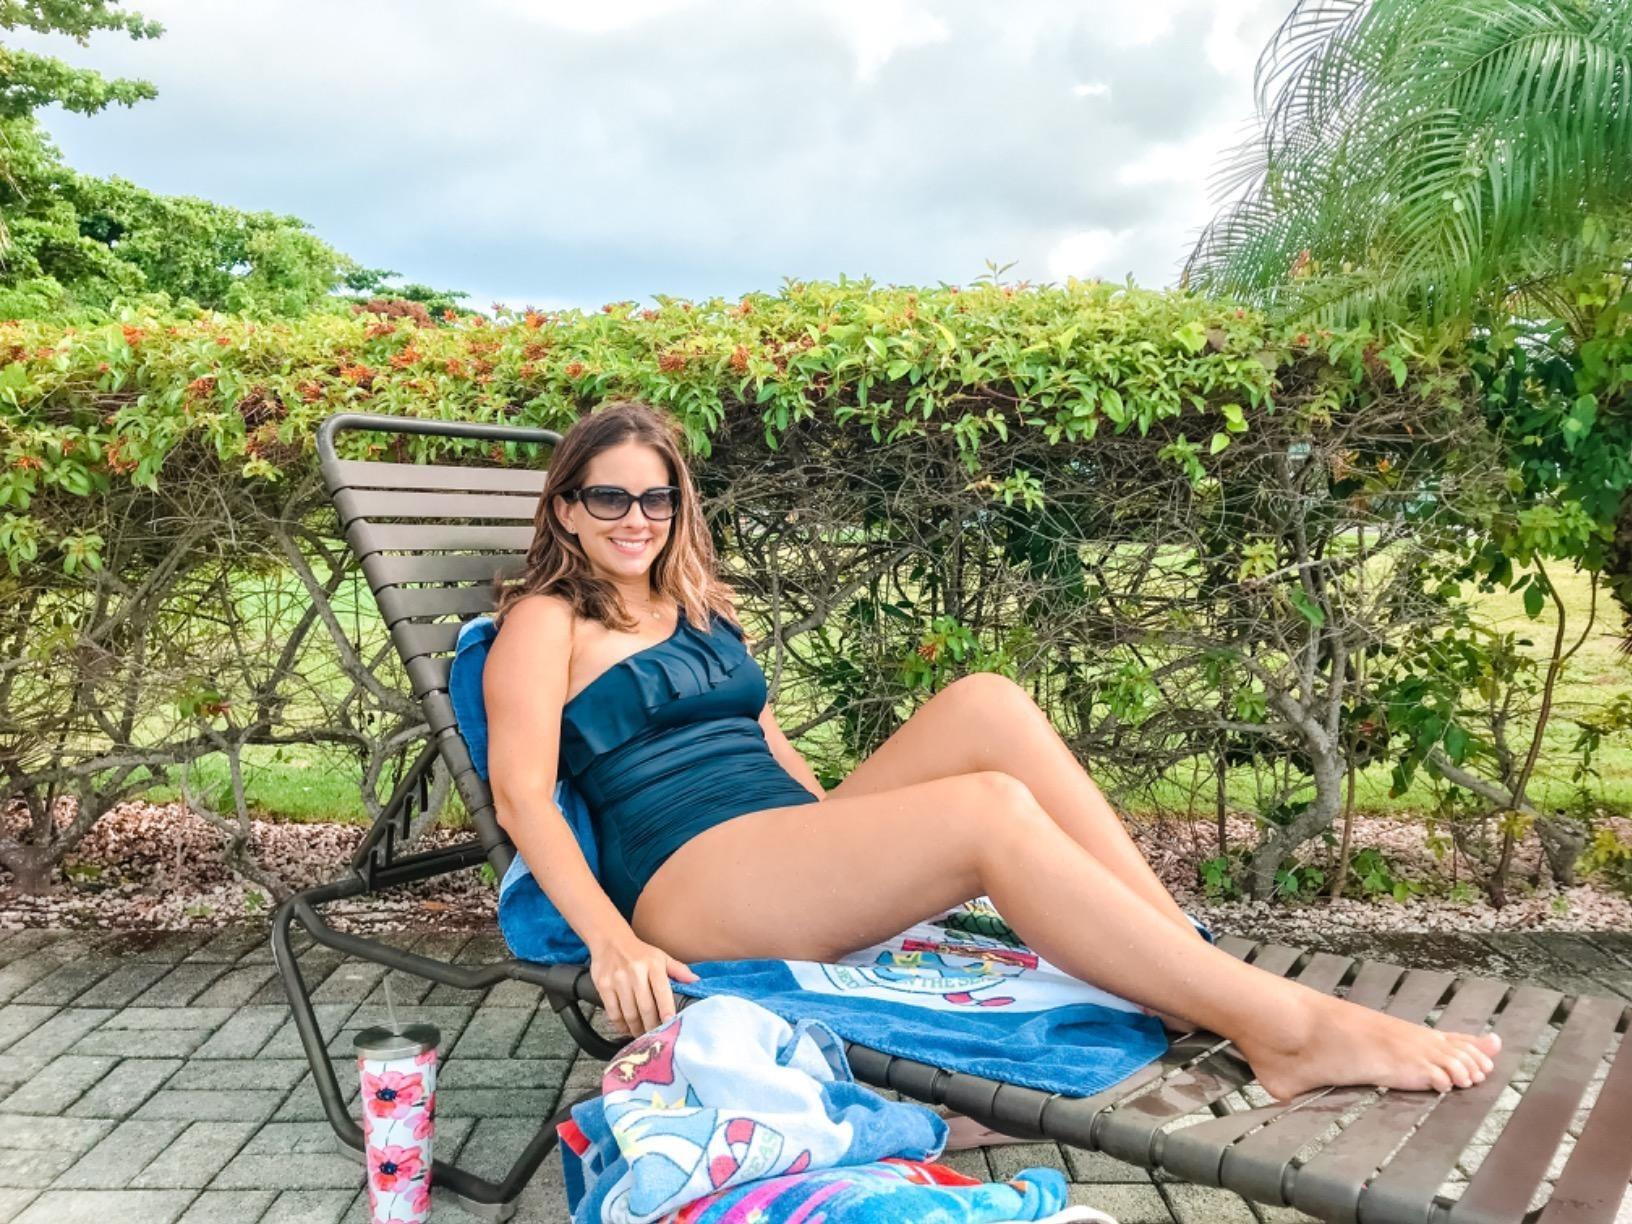 Reviewer wearing turquoise bathing suit with side ruching